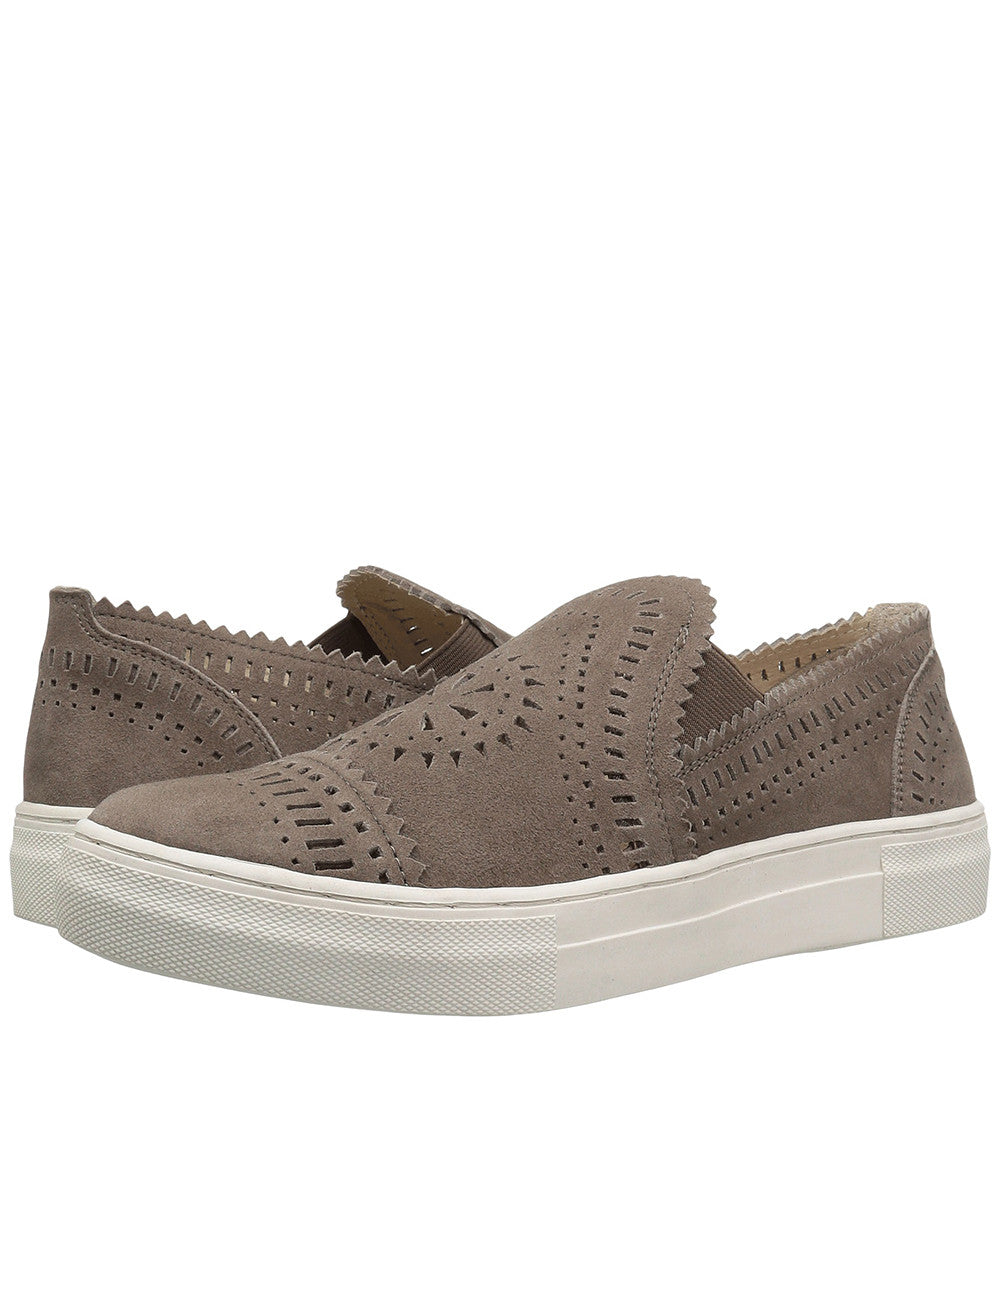 Seychelles So Nice Suede Slip-on